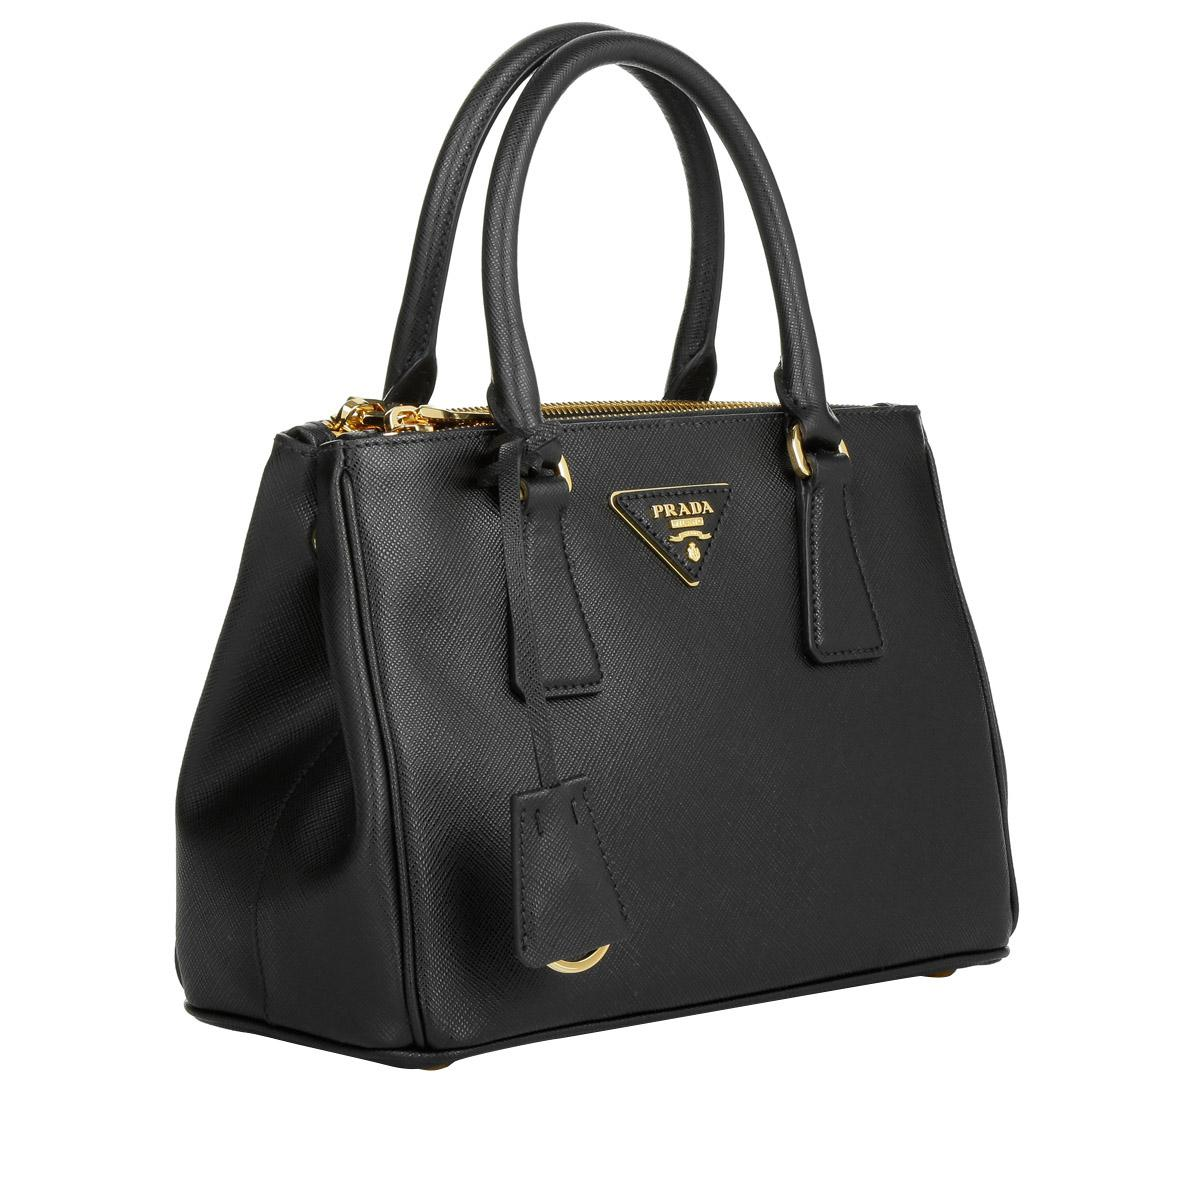 Prada - Black Galleria Tote Bag Saffiano Small Nero. - Lyst. View fullscreen f665b07667334